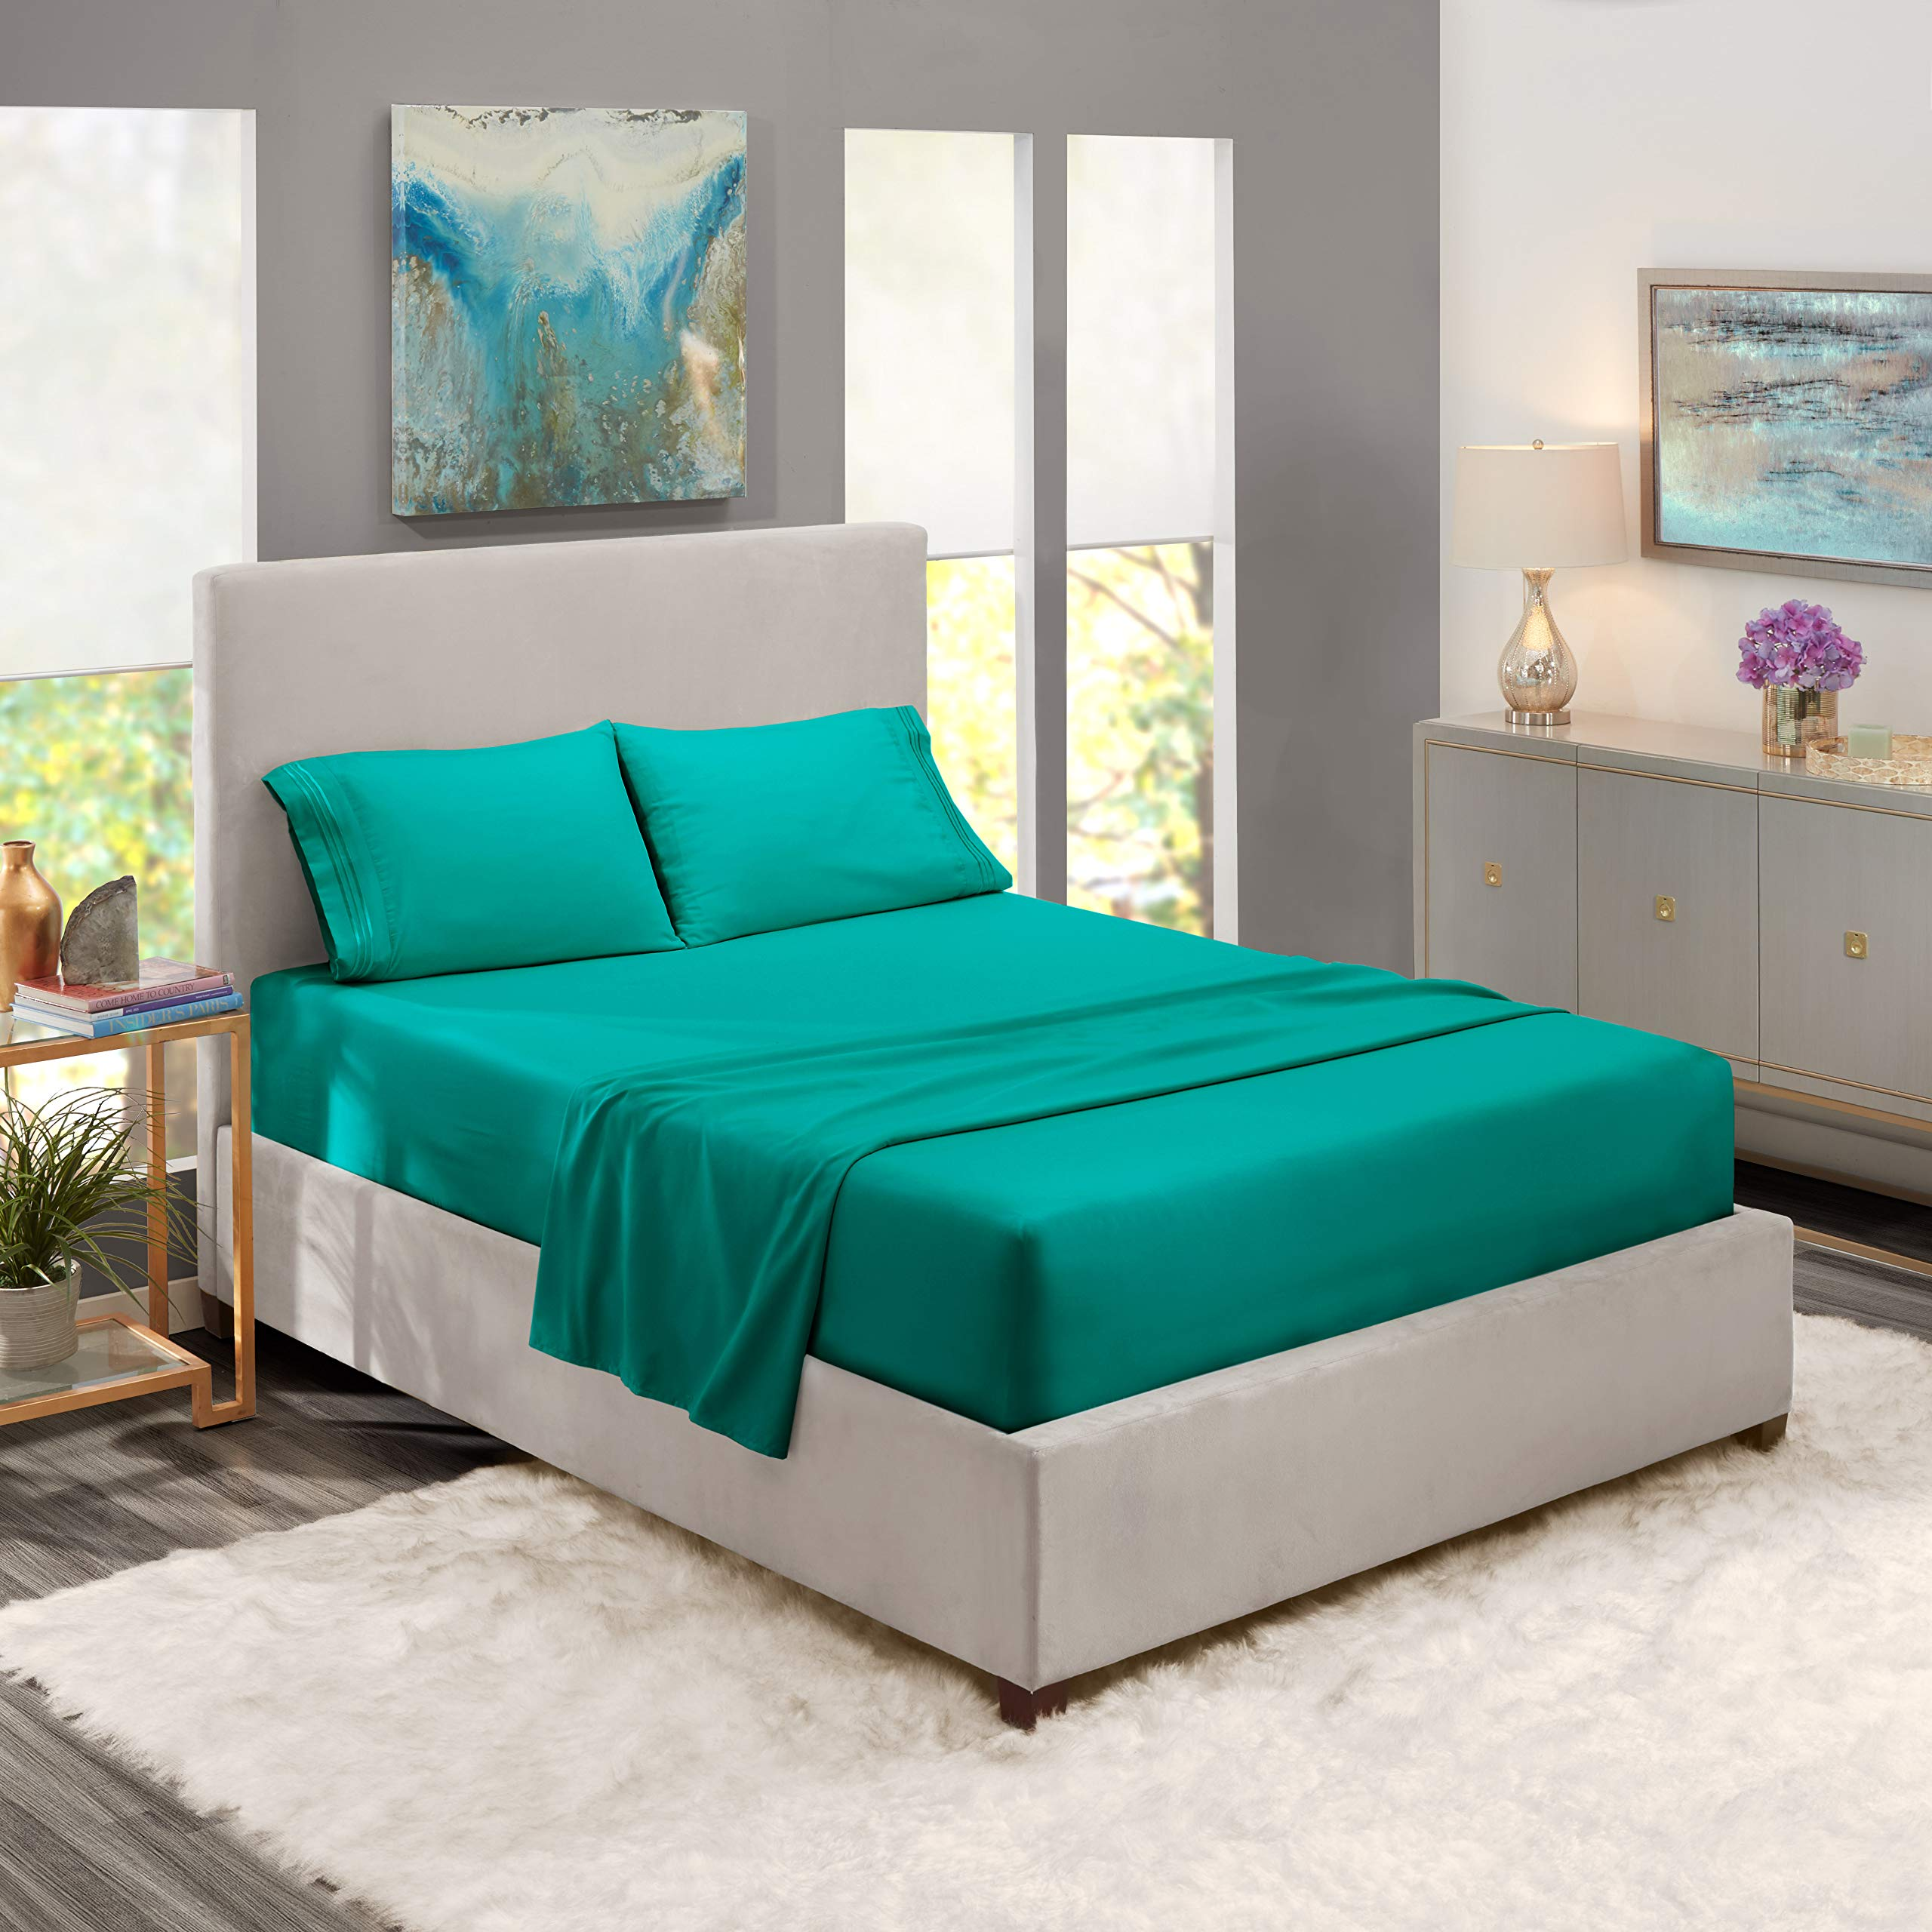 Nestl Luxury Queen Sheet Set - 4 Piece Extra Soft 1800 Deep Pocket Bed Sheets with Fitted Sheet, Flat Sheet, 2 Pillow Cases, Hotel Grade Comfort and Softness - Teal